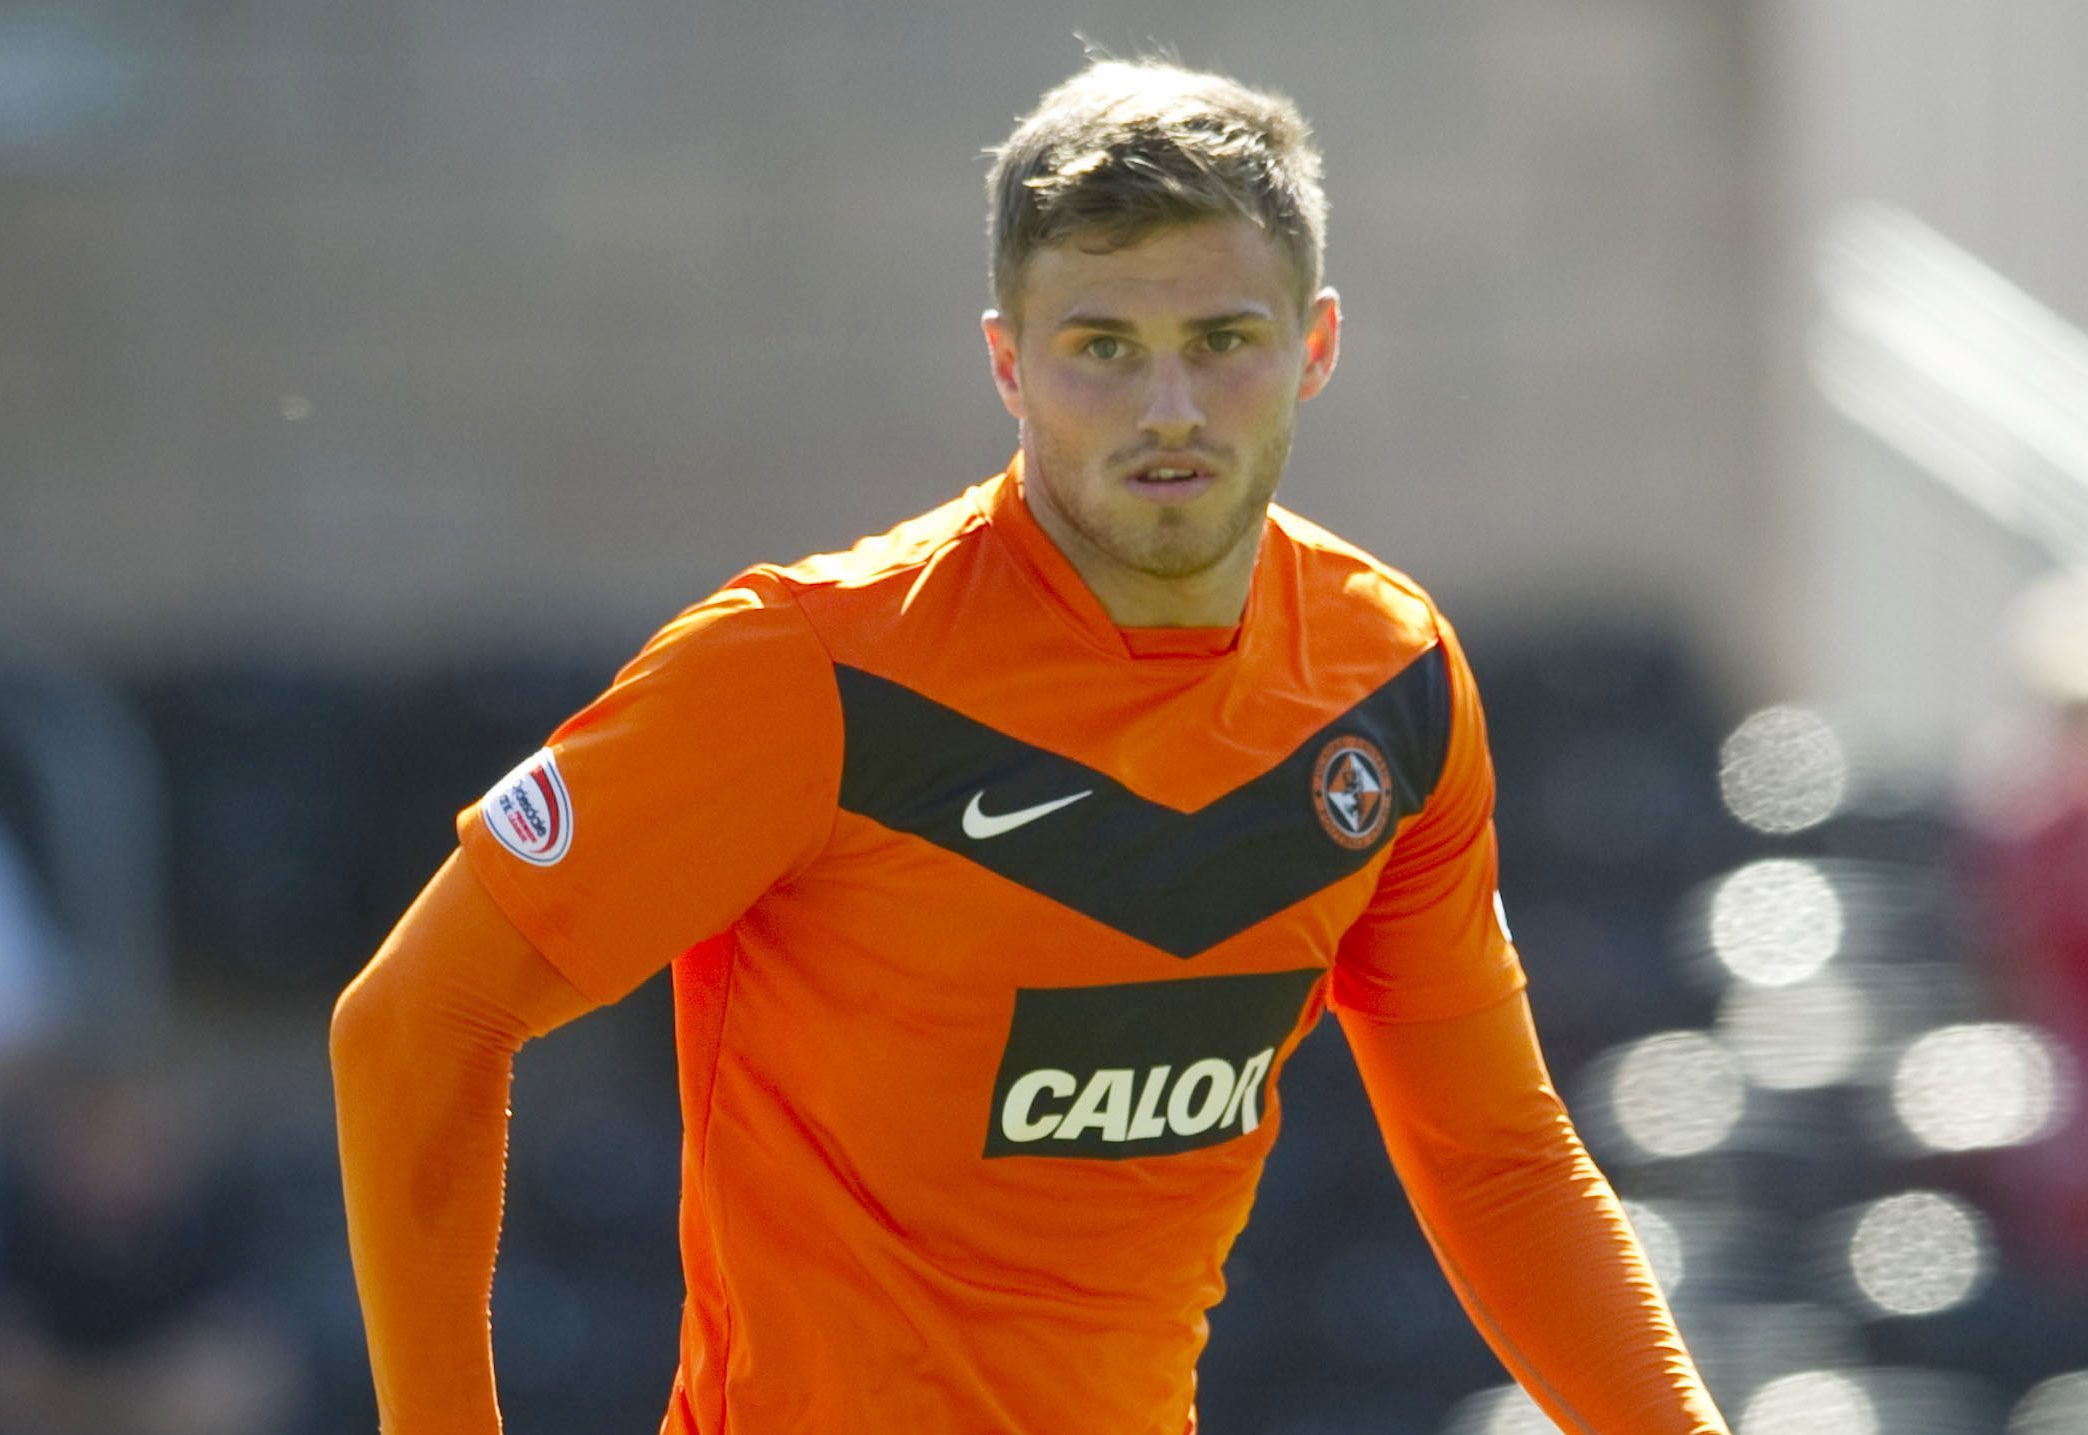 David Goodwillie says he is considering an appeal after the civil court verdict.